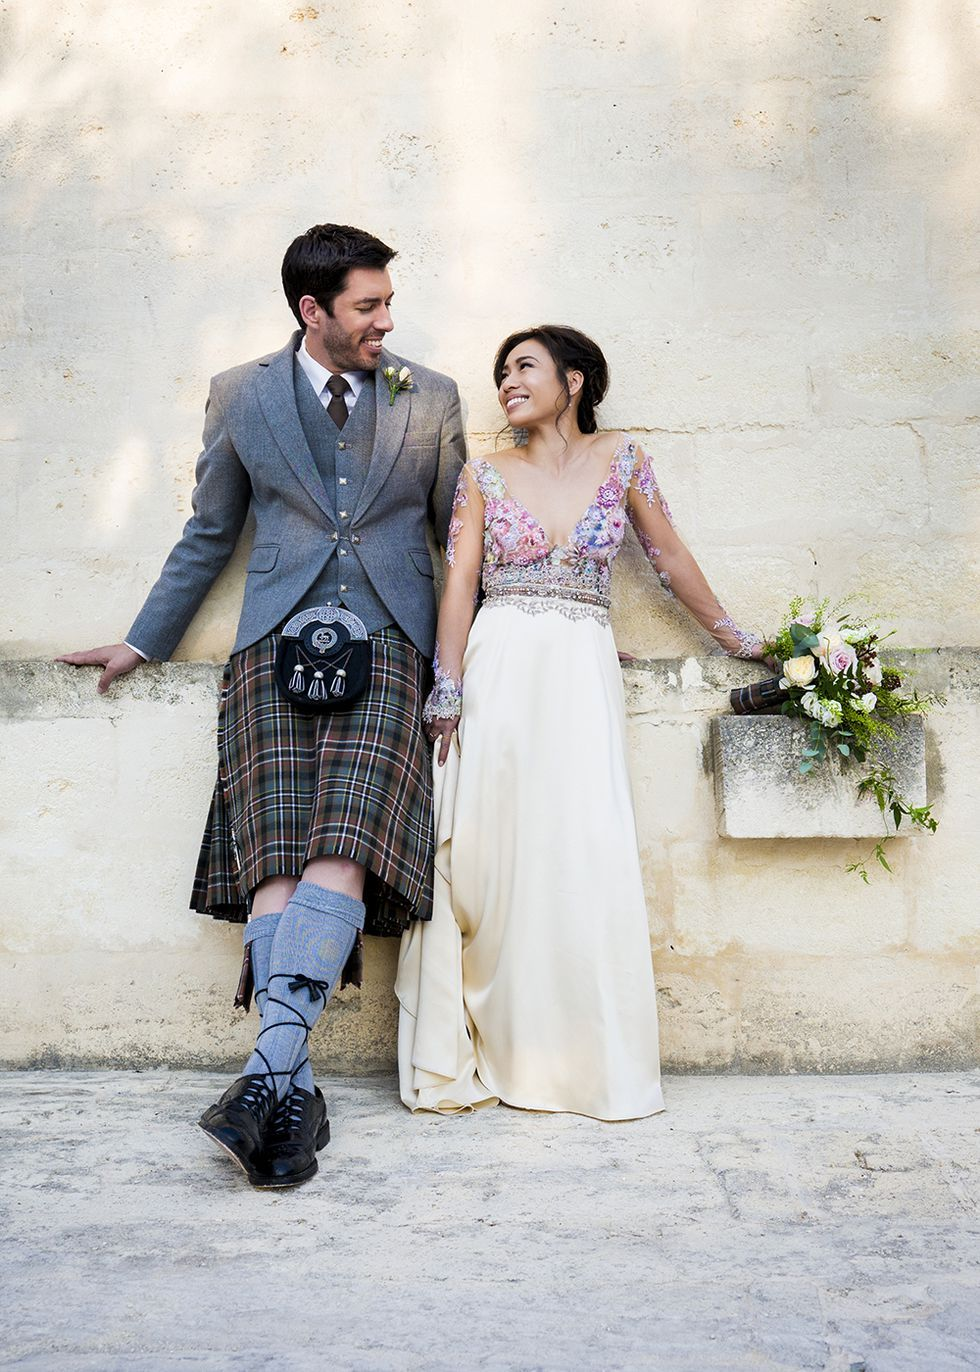 Drew Scott And Linda Phan's Wedding In Italy